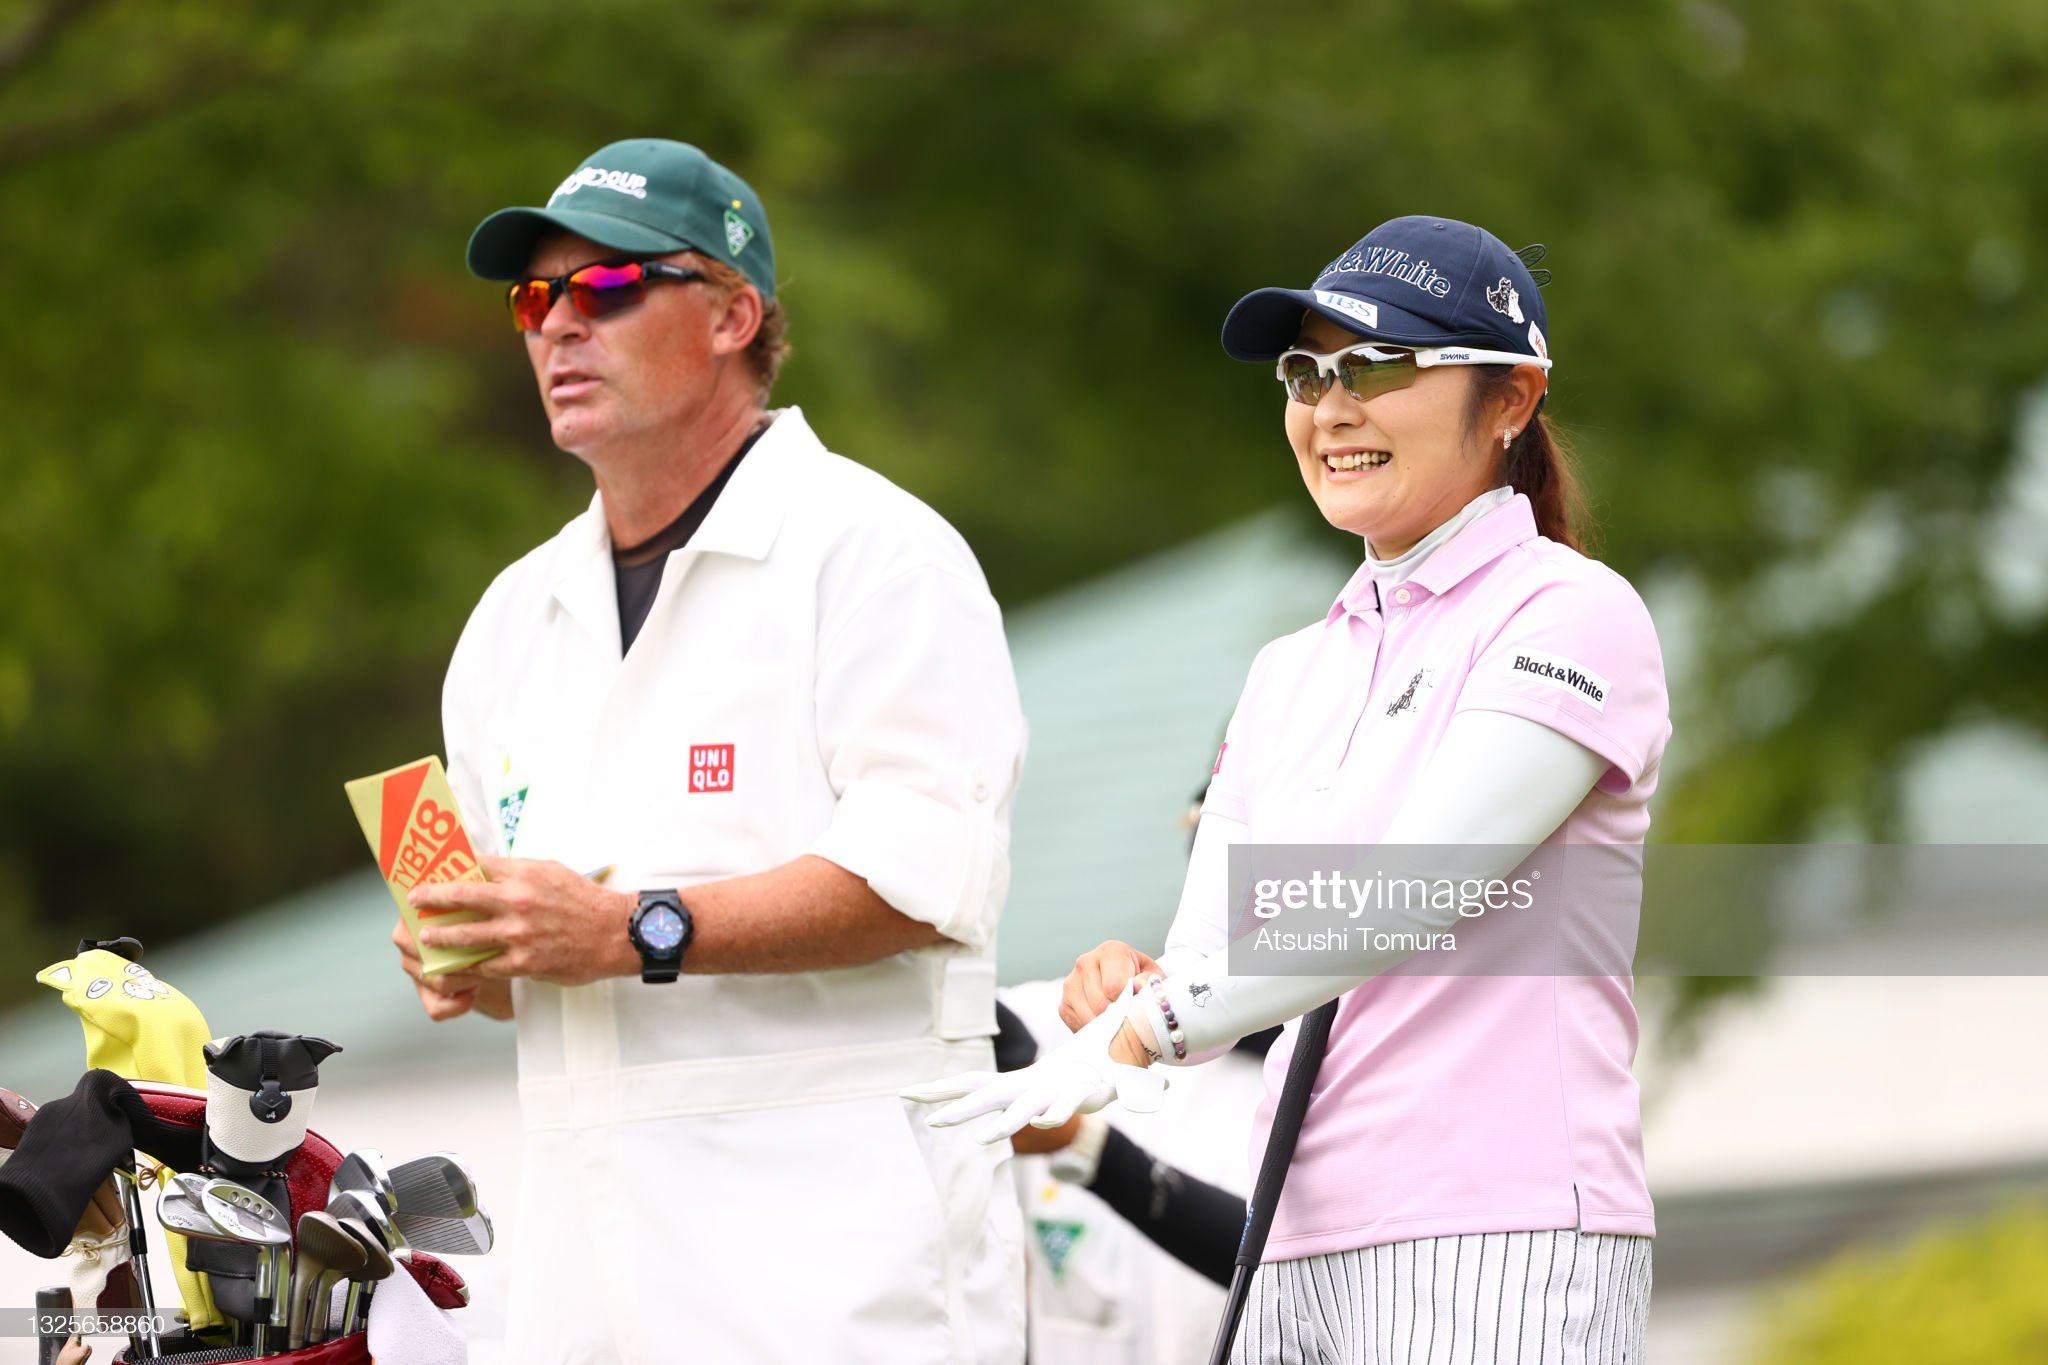 https://media.gettyimages.com/photos/saiki-fujita-of-japan-smiles-on-the-6th-tee-during-the-final-round-of-picture-id1325658860?s=2048x2048